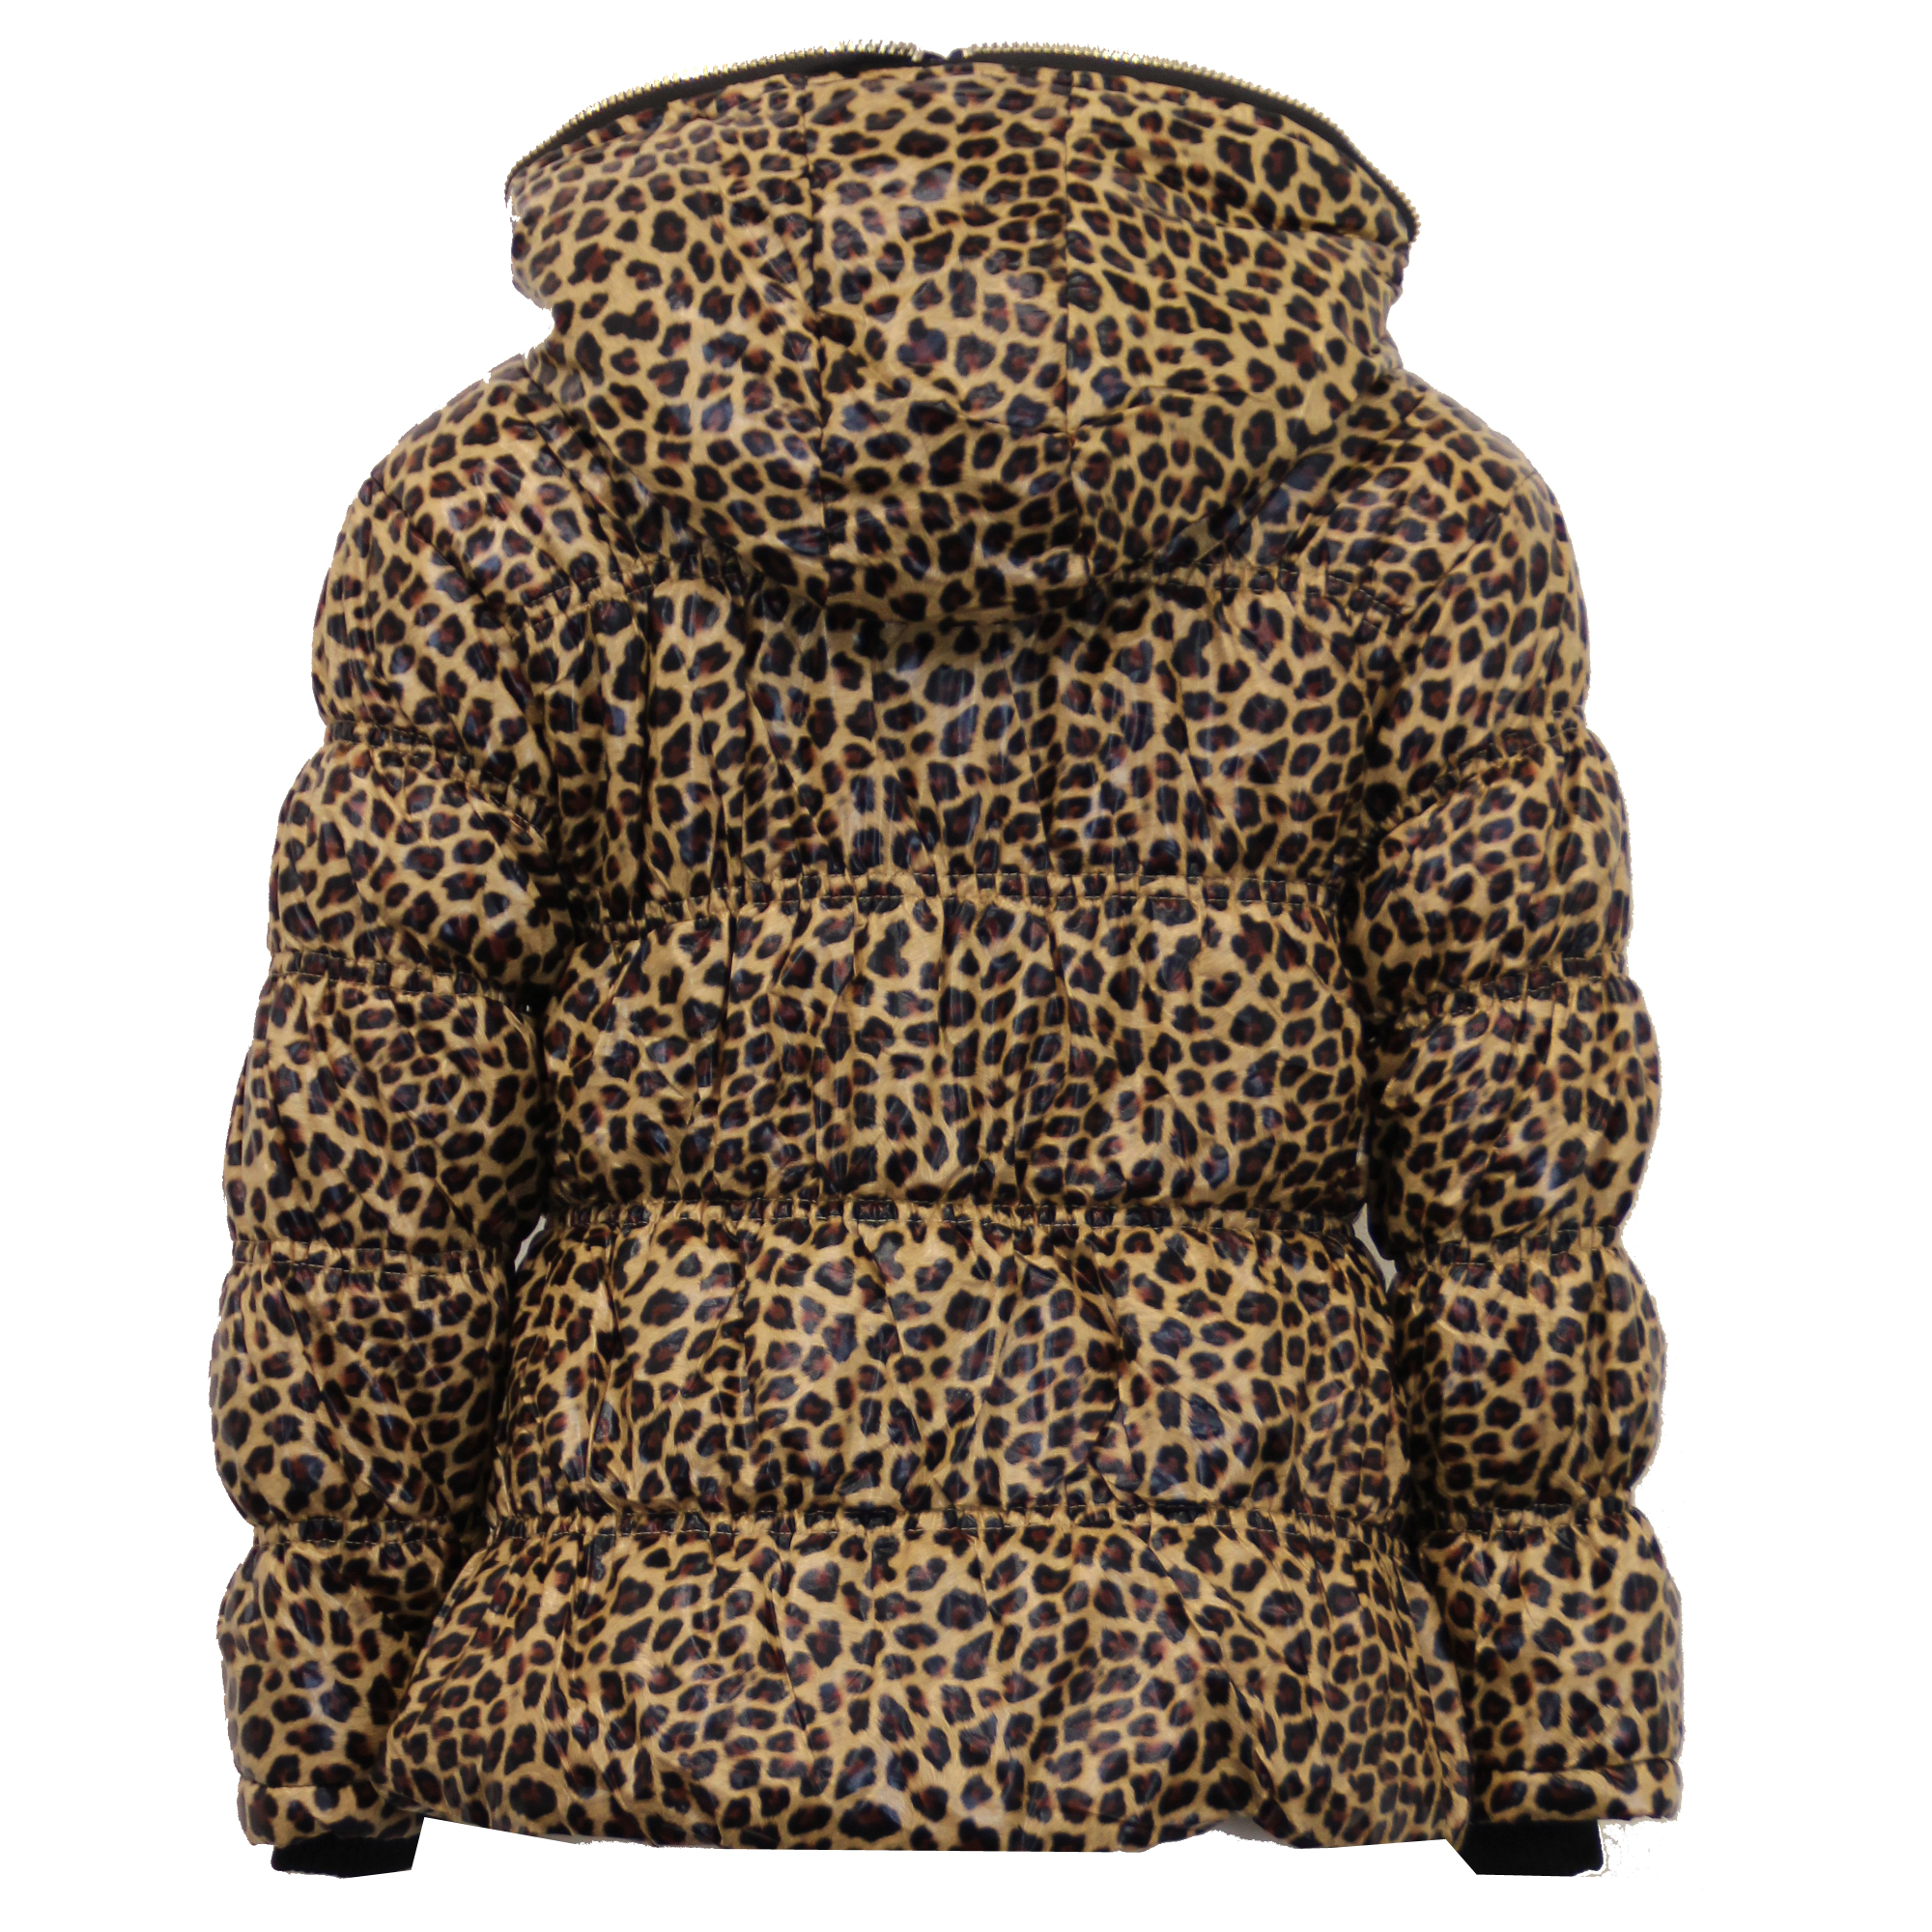 Shop for girls leopard clothing online at Target. Free shipping on purchases over $35 and save 5% every day with your Target REDcard.